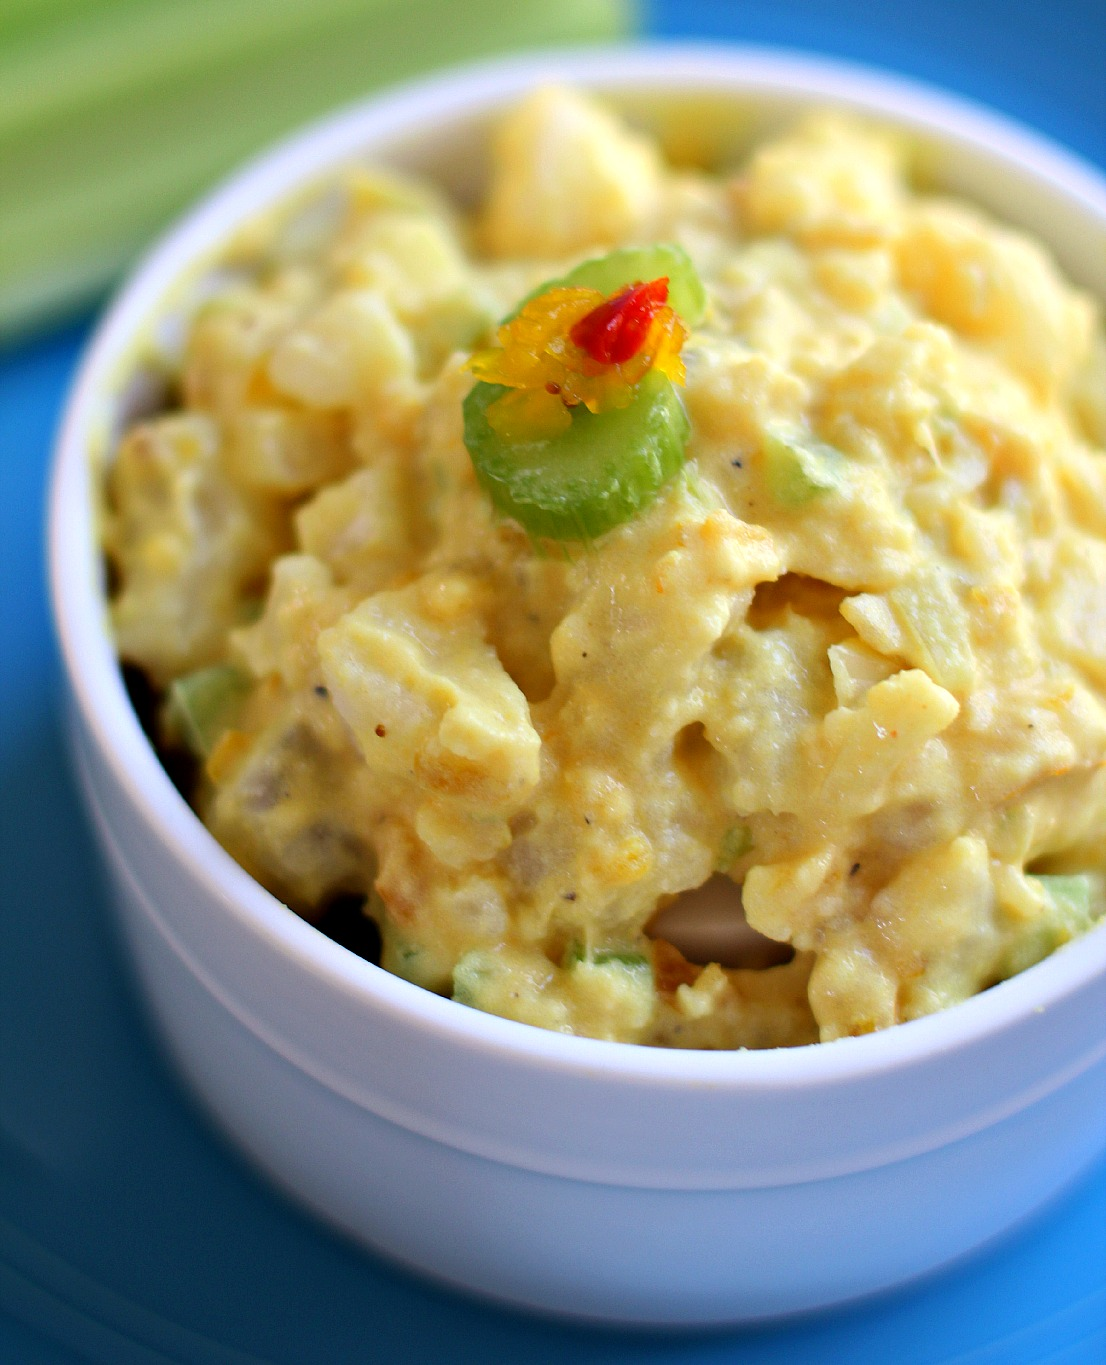 Mustard Potato Salad with Tomato Relish